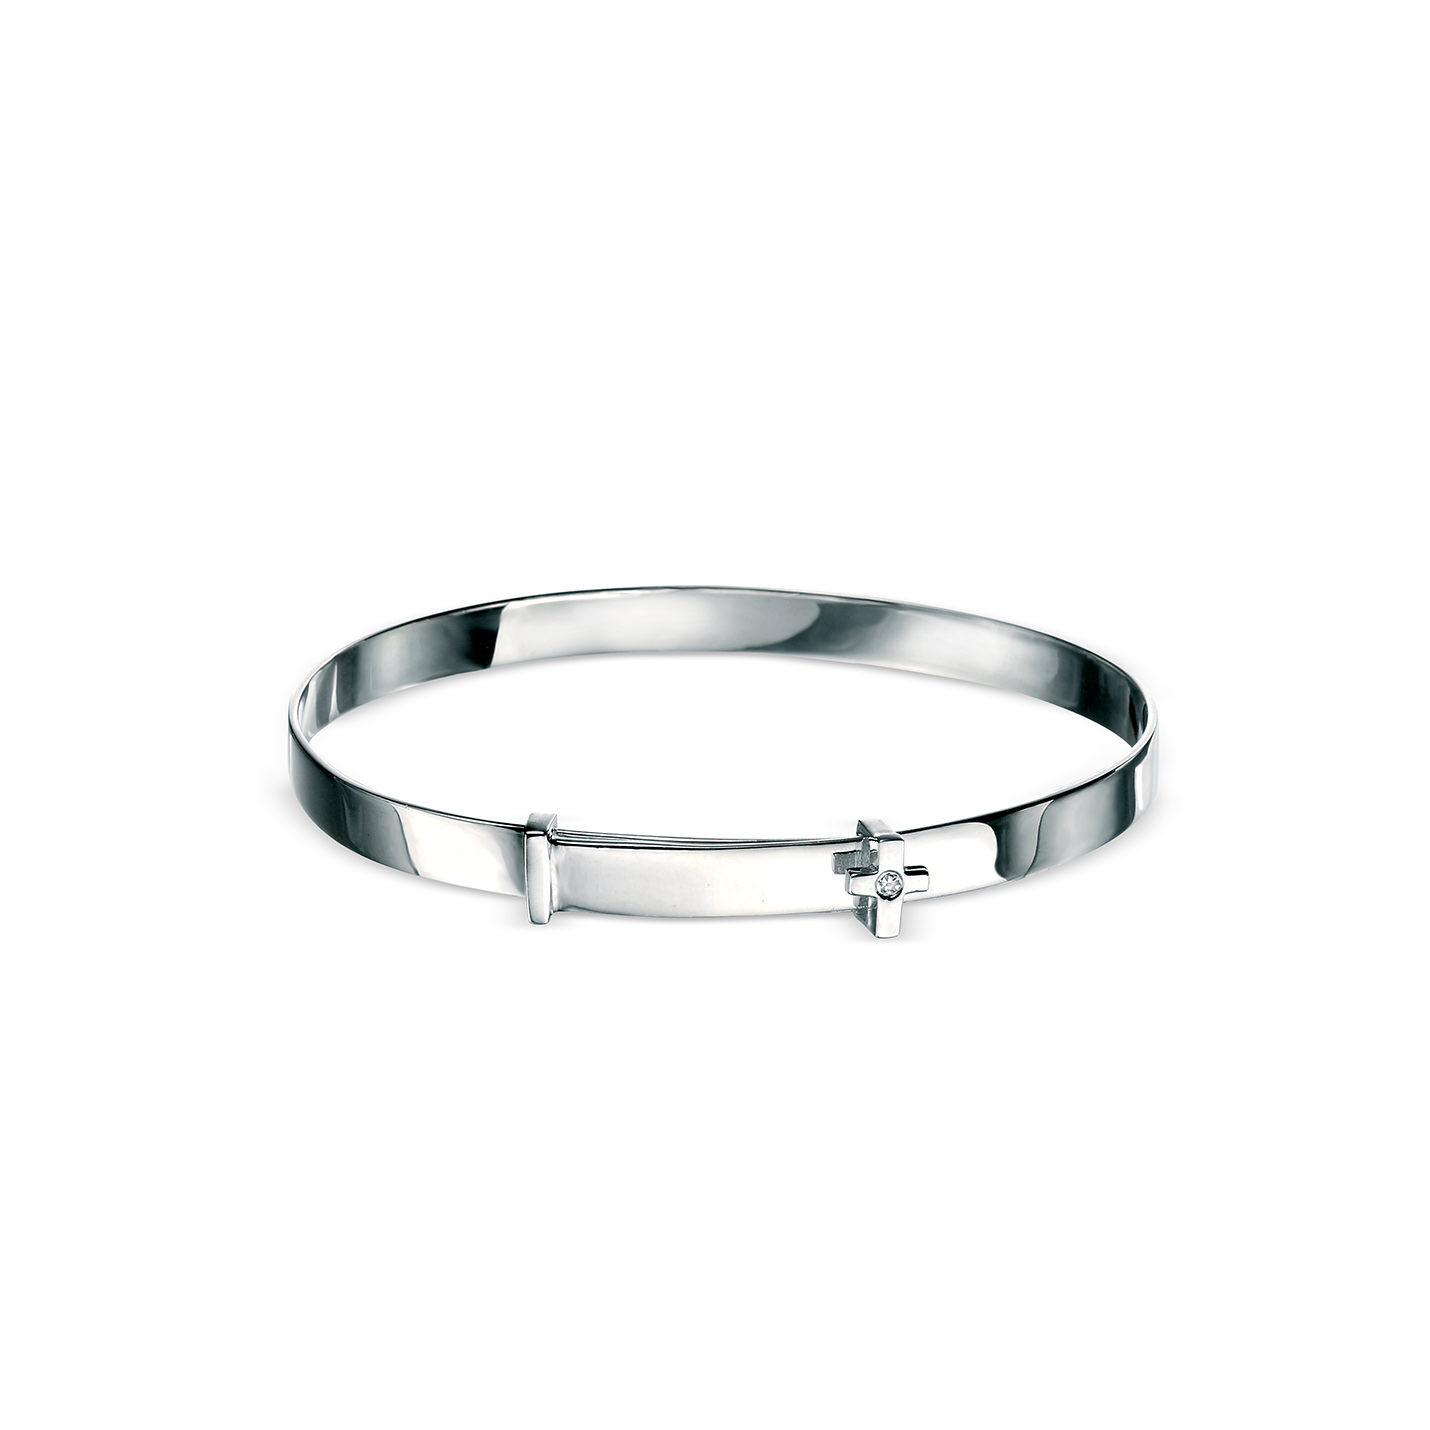 A sterling silver baby bangle by D for Diamond.  This full silver bracelet has a diamond and cross detail and is able to be engraved.  The perfect christening or first birthday gift.